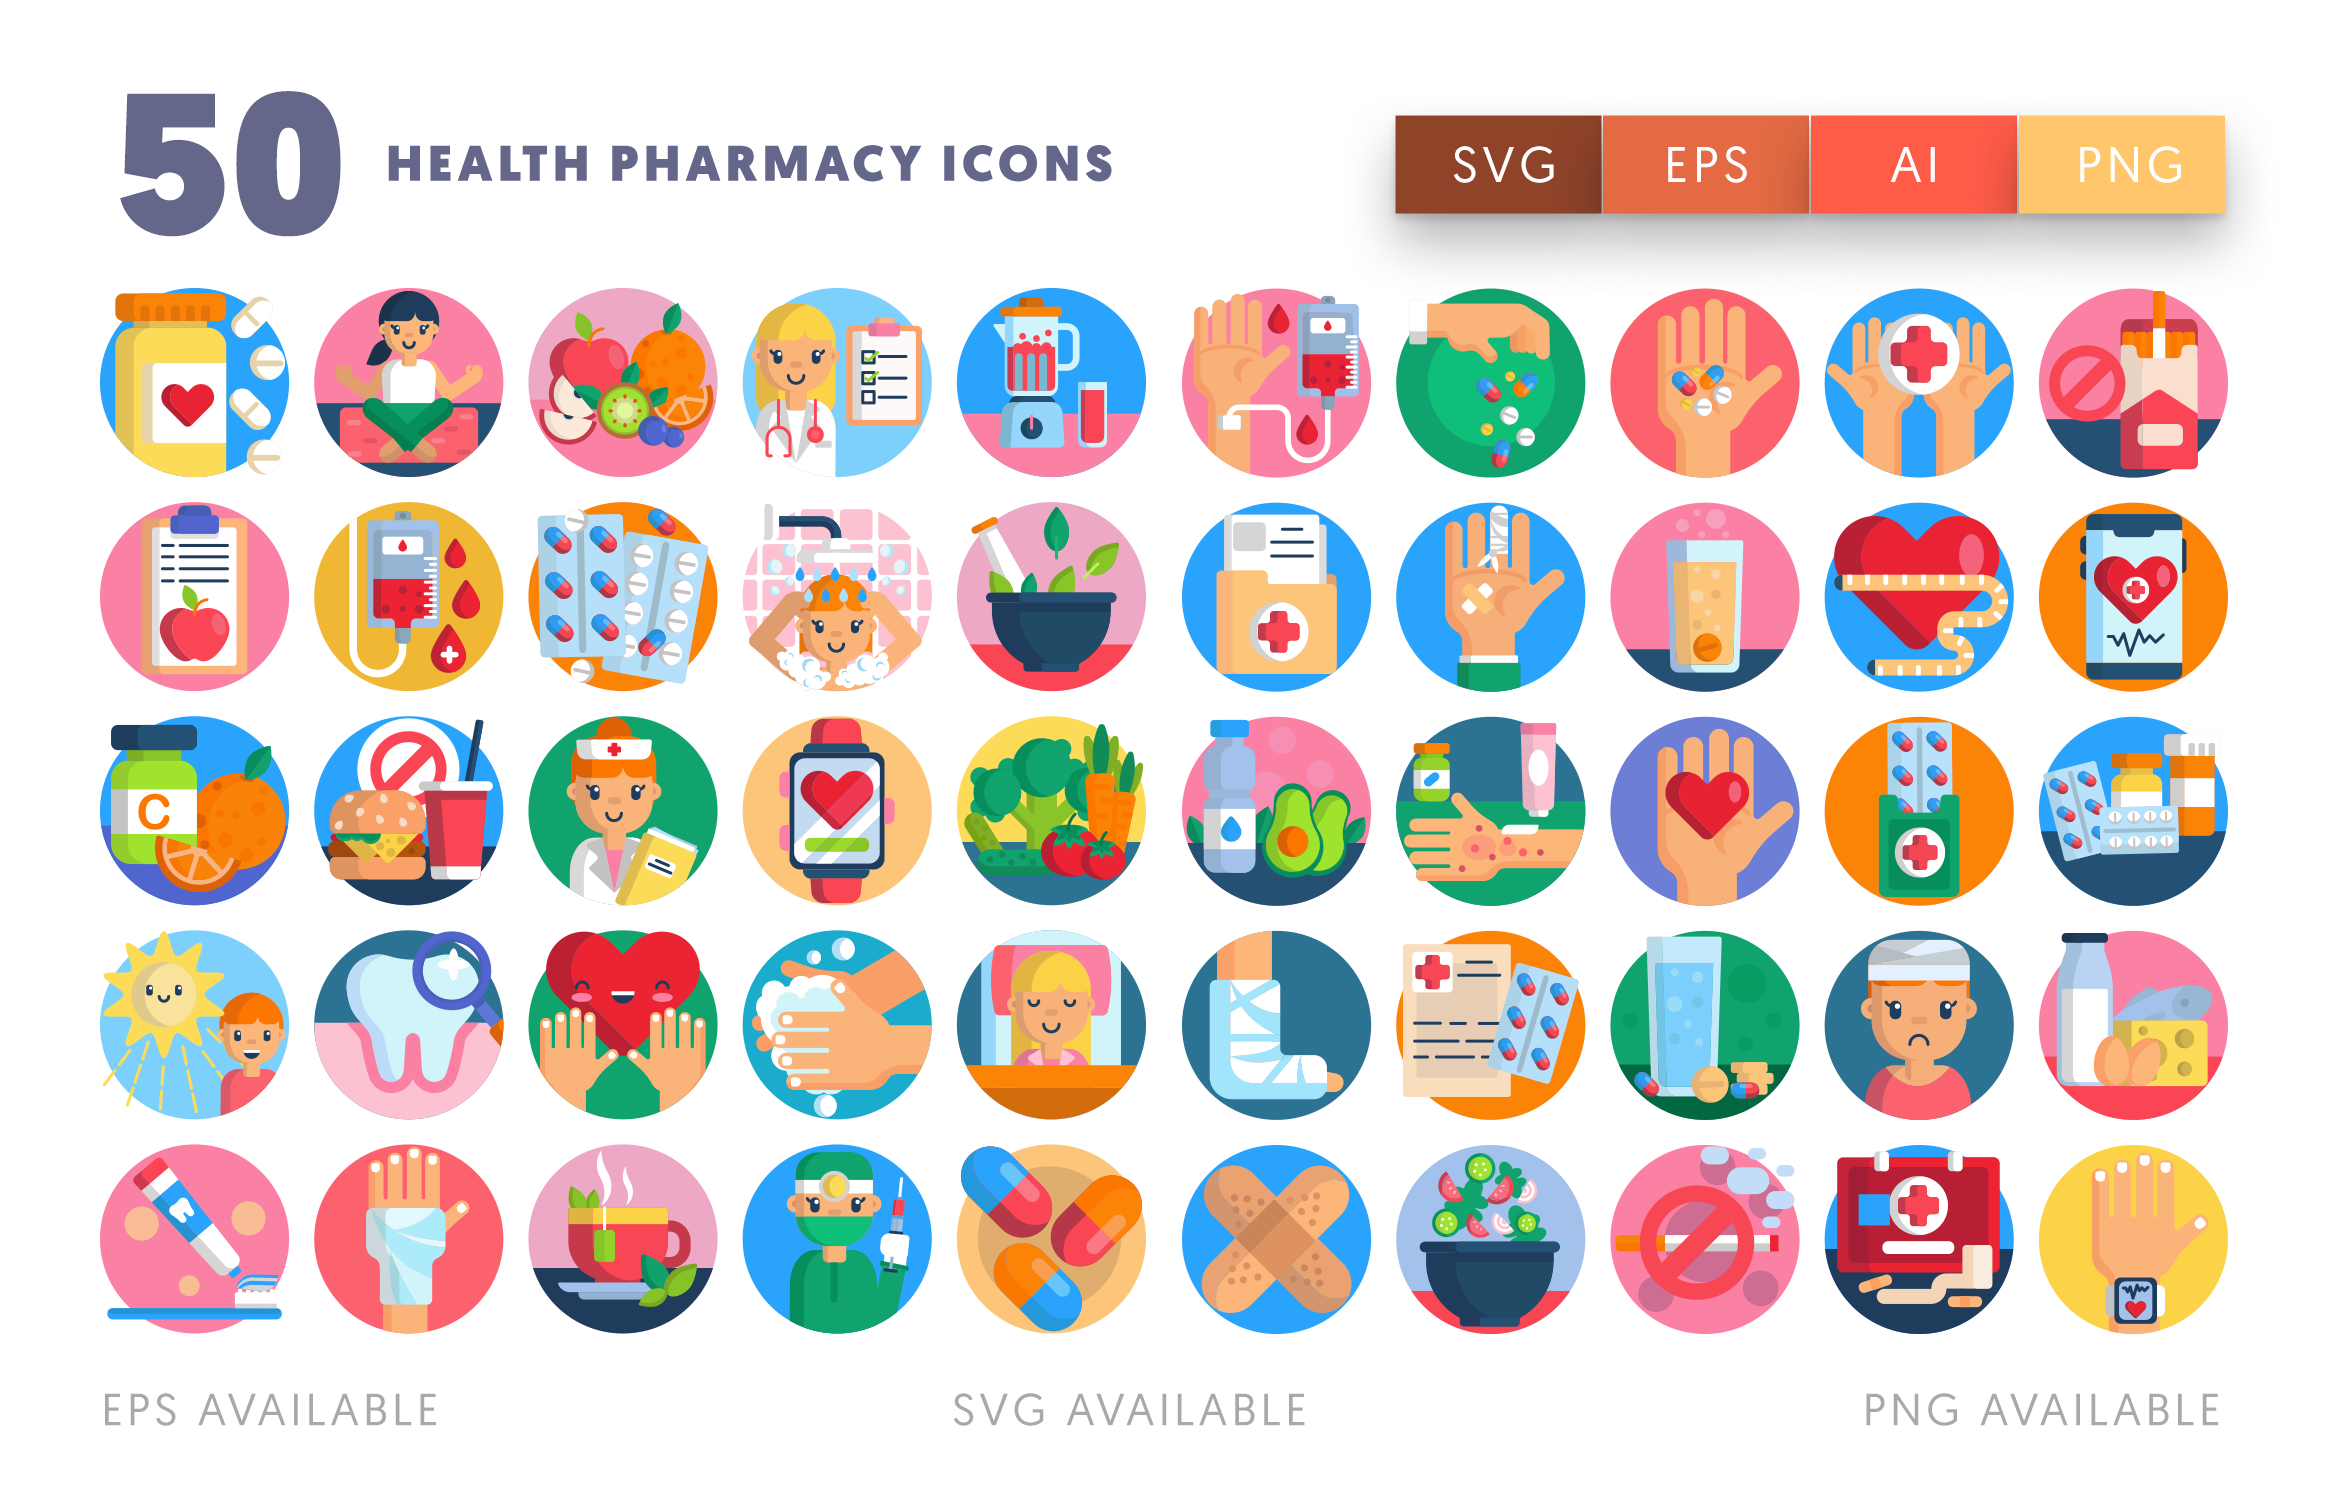 50 Health Pharmacy Icons